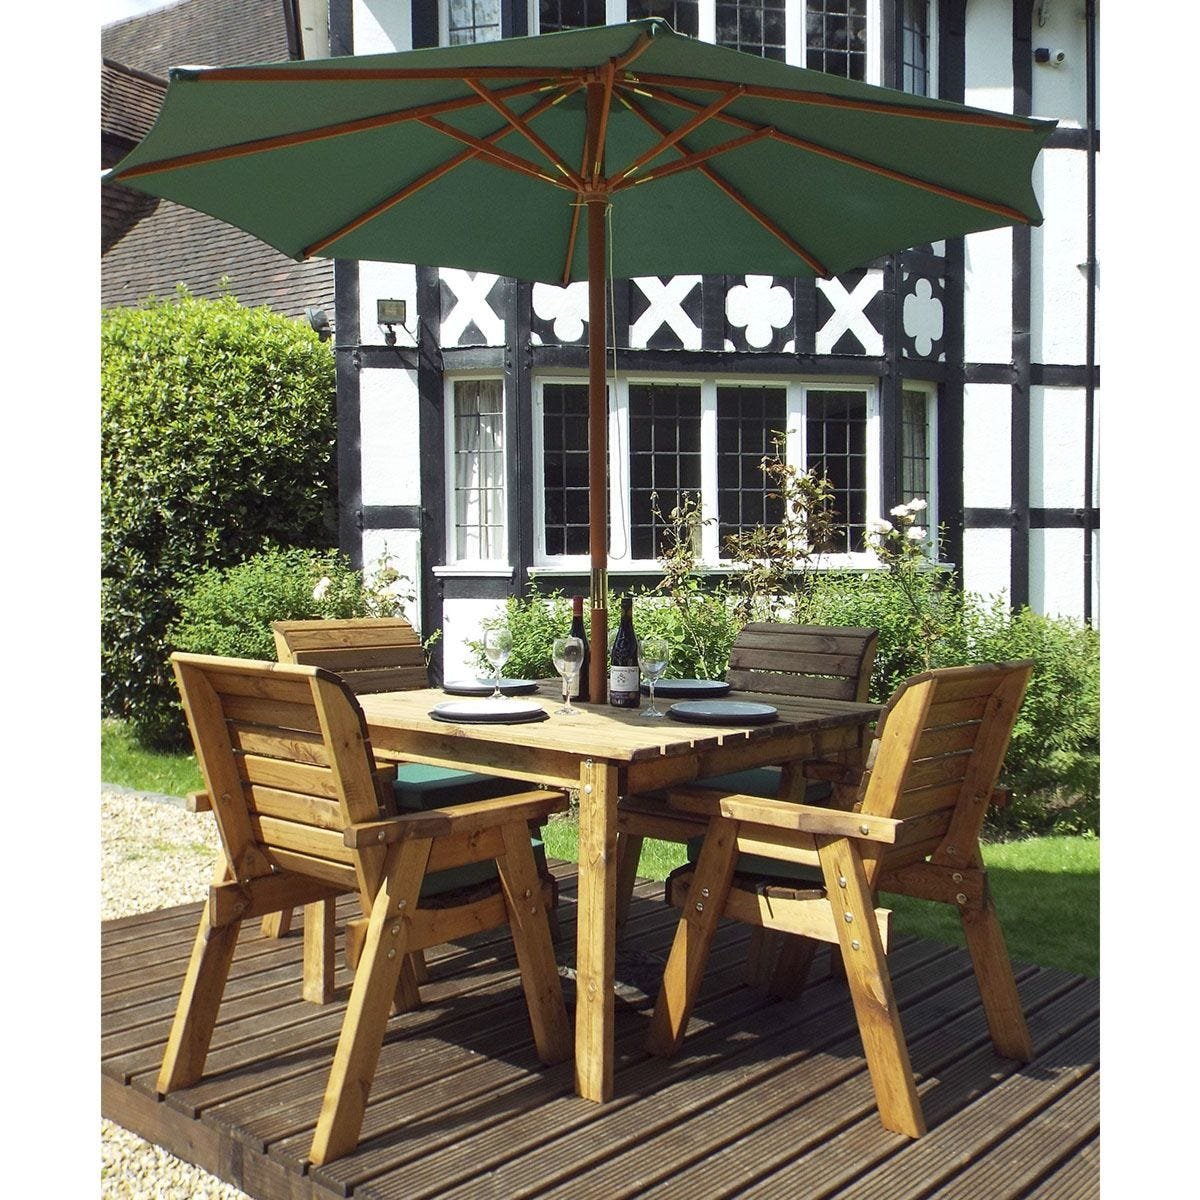 Charles Taylor 4 Seater Square Table Set with Cushions, Storage Bag, Parasol and Base